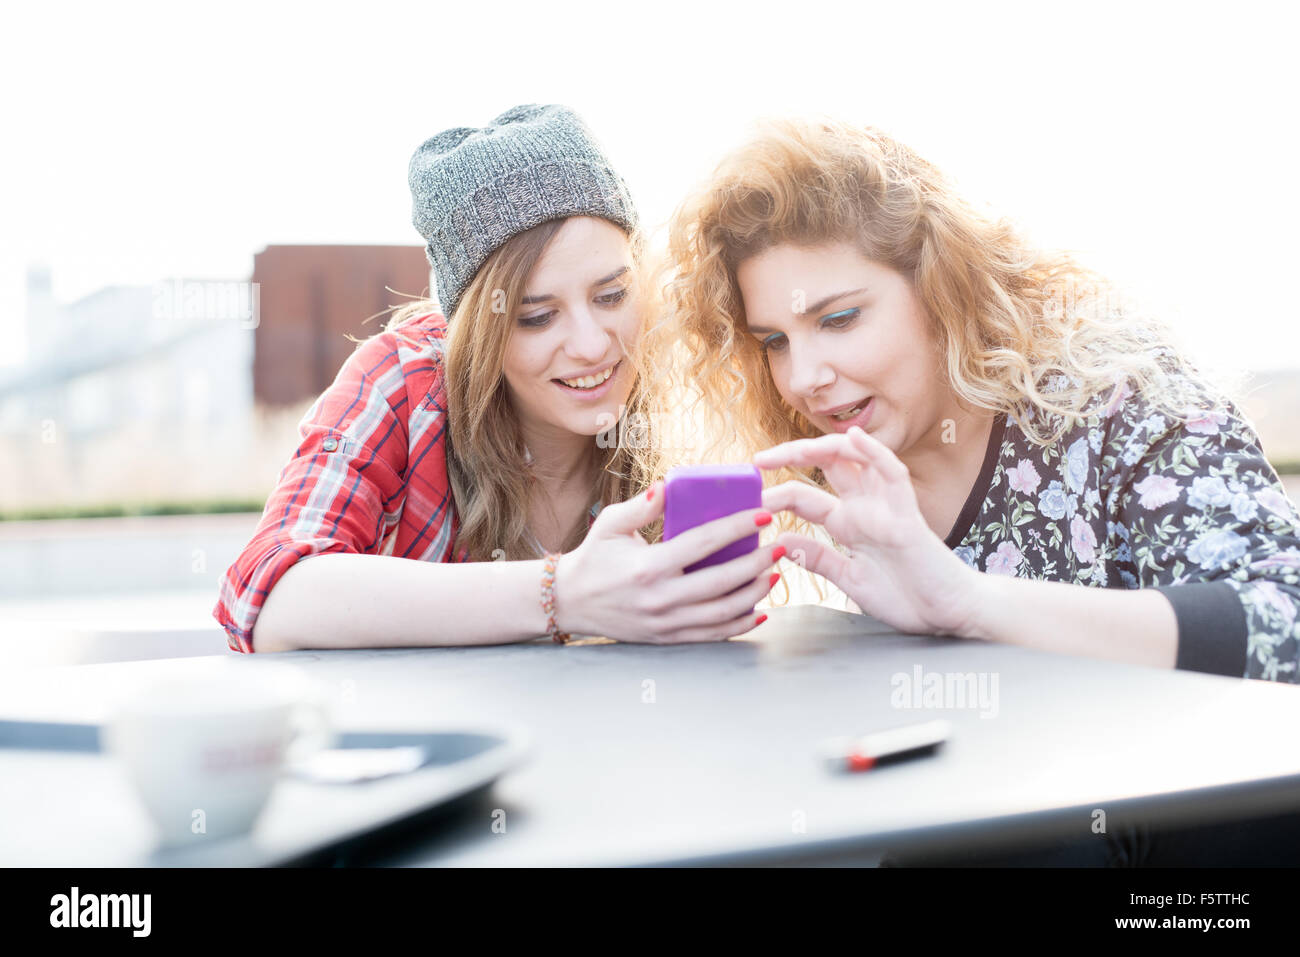 Two young curly and straight blonde hair caucasian woman sitting on a bar, using smartphone, both looking downward - Stock Image